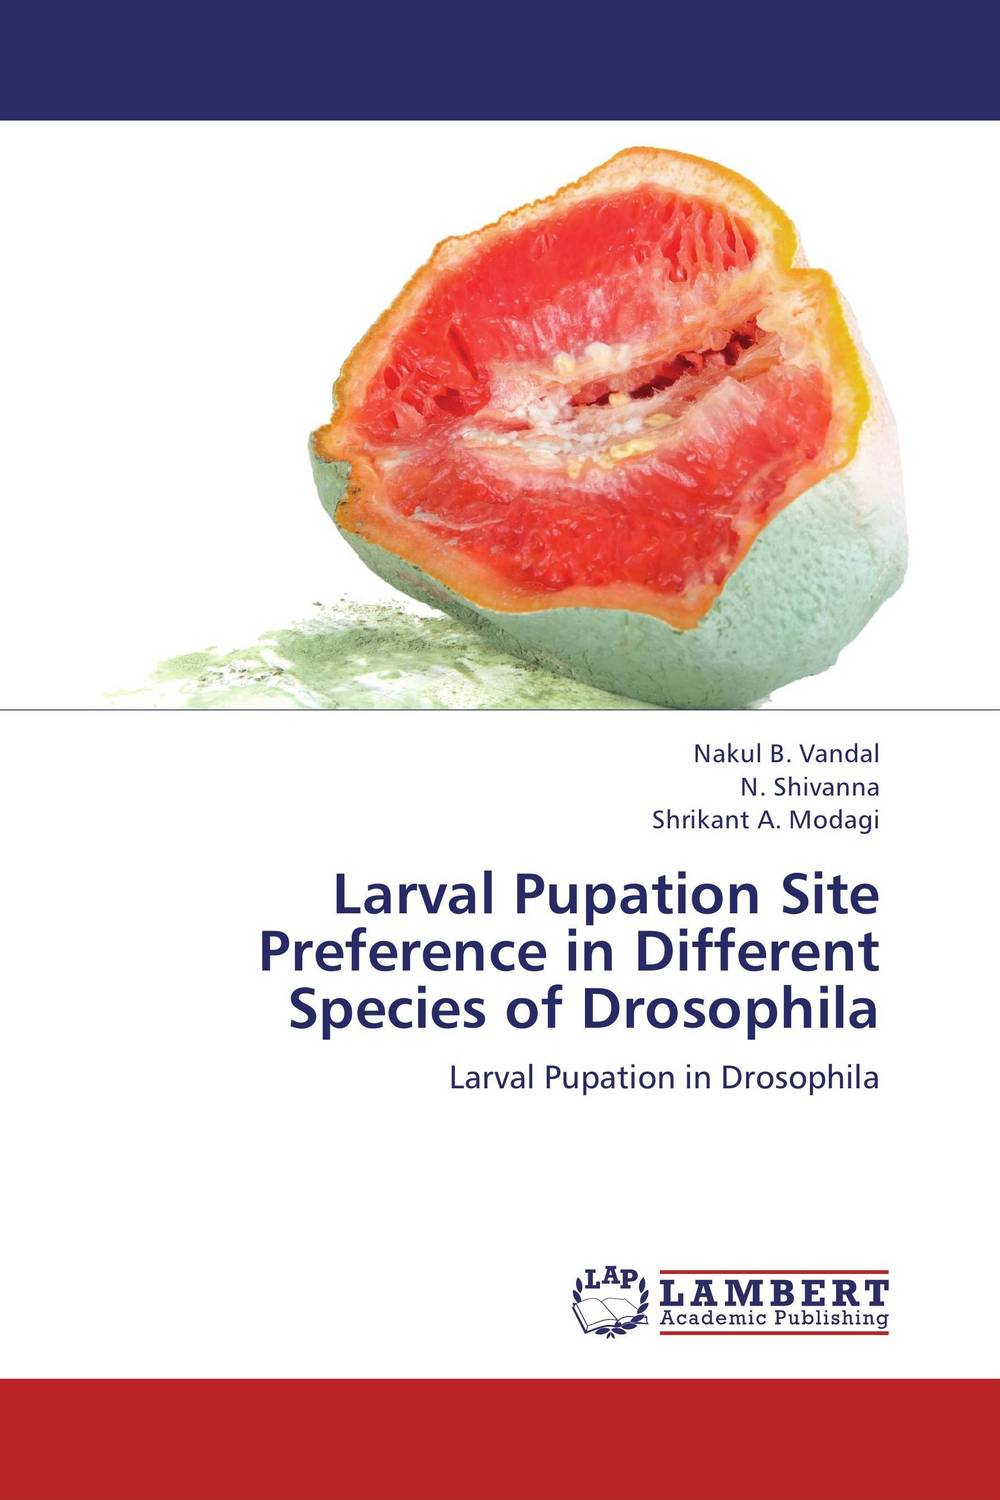 Larval Pupation Site Preference in Different Species of Drosophila rummy игра site by